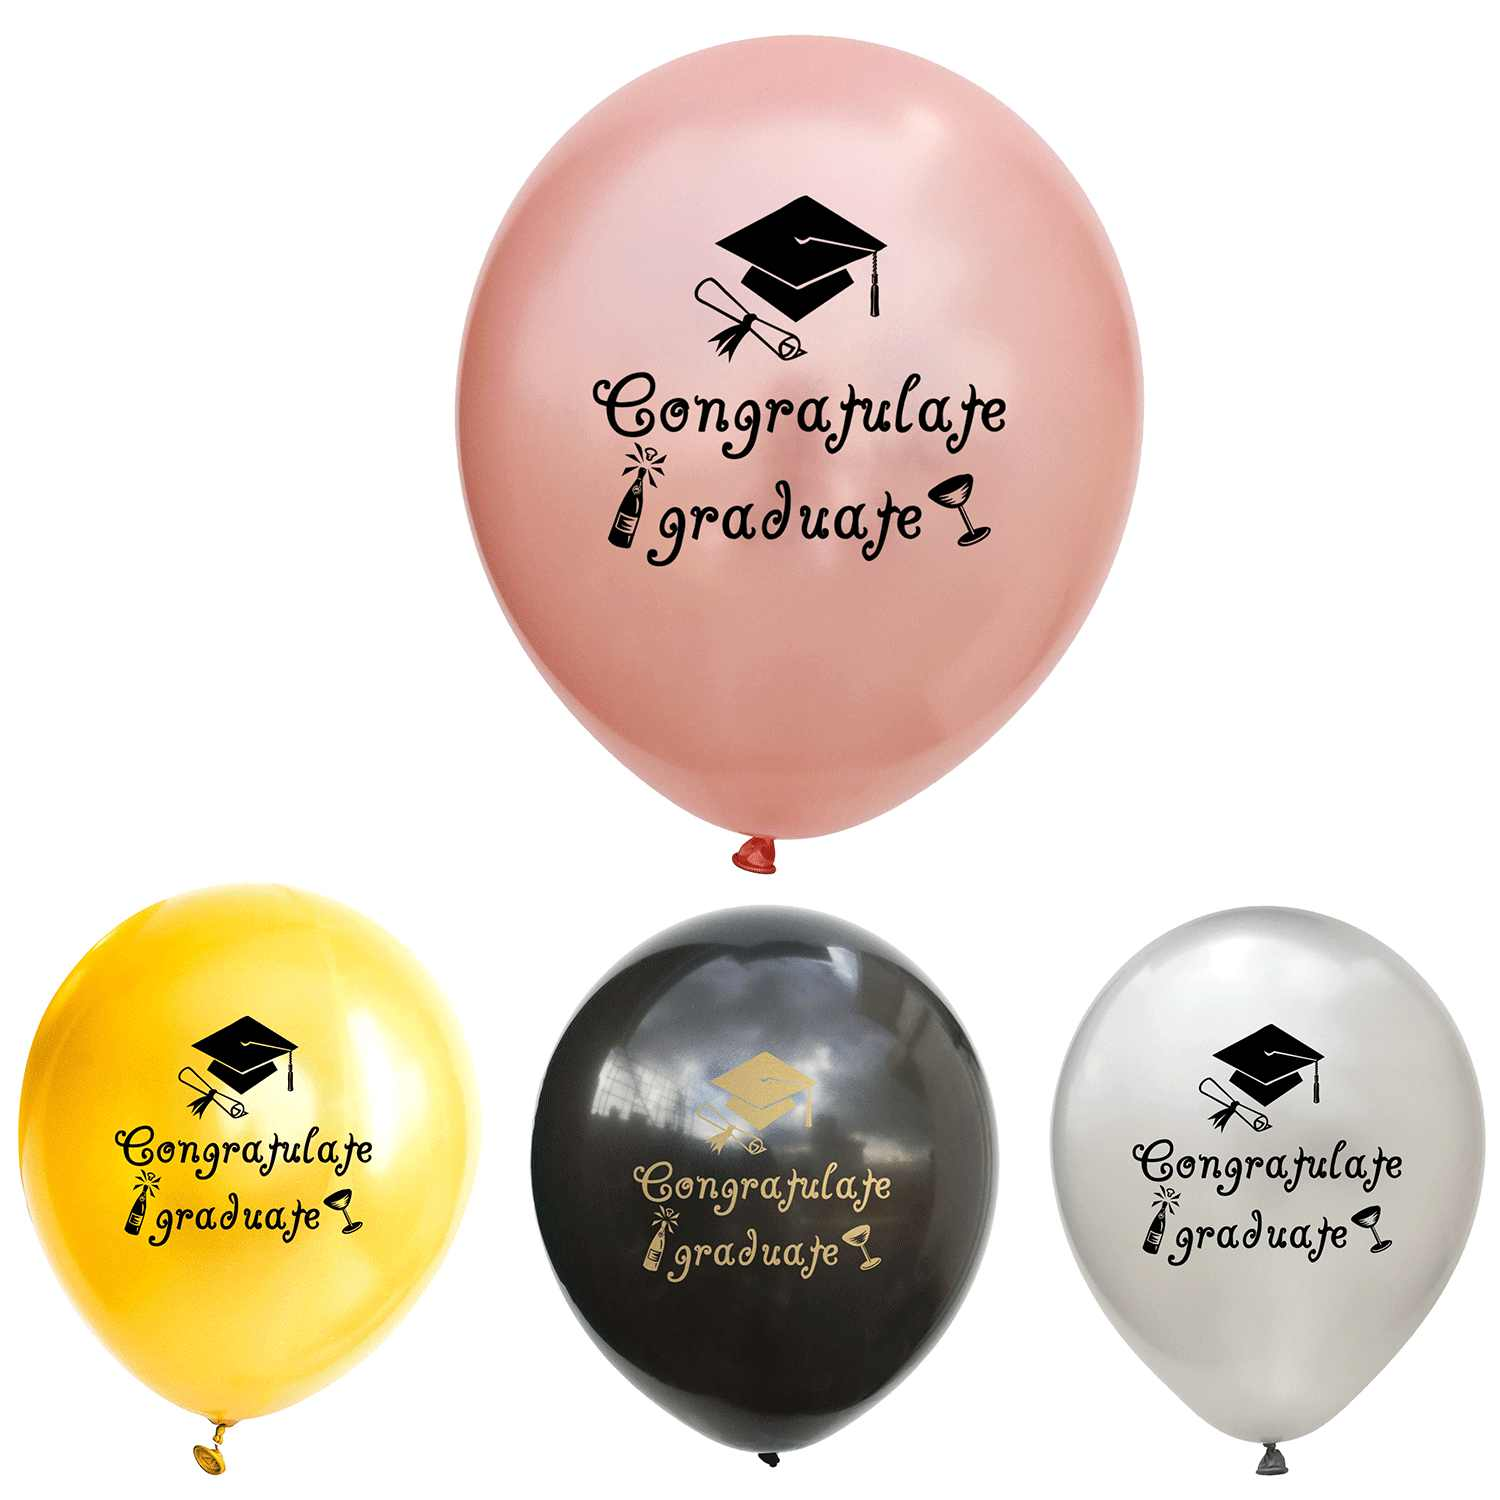 15/9pcs Congratulate Graduate Painted Latex Balloons Rose Gold Confetti Balloons Graduation Students Party Decorations Supplies